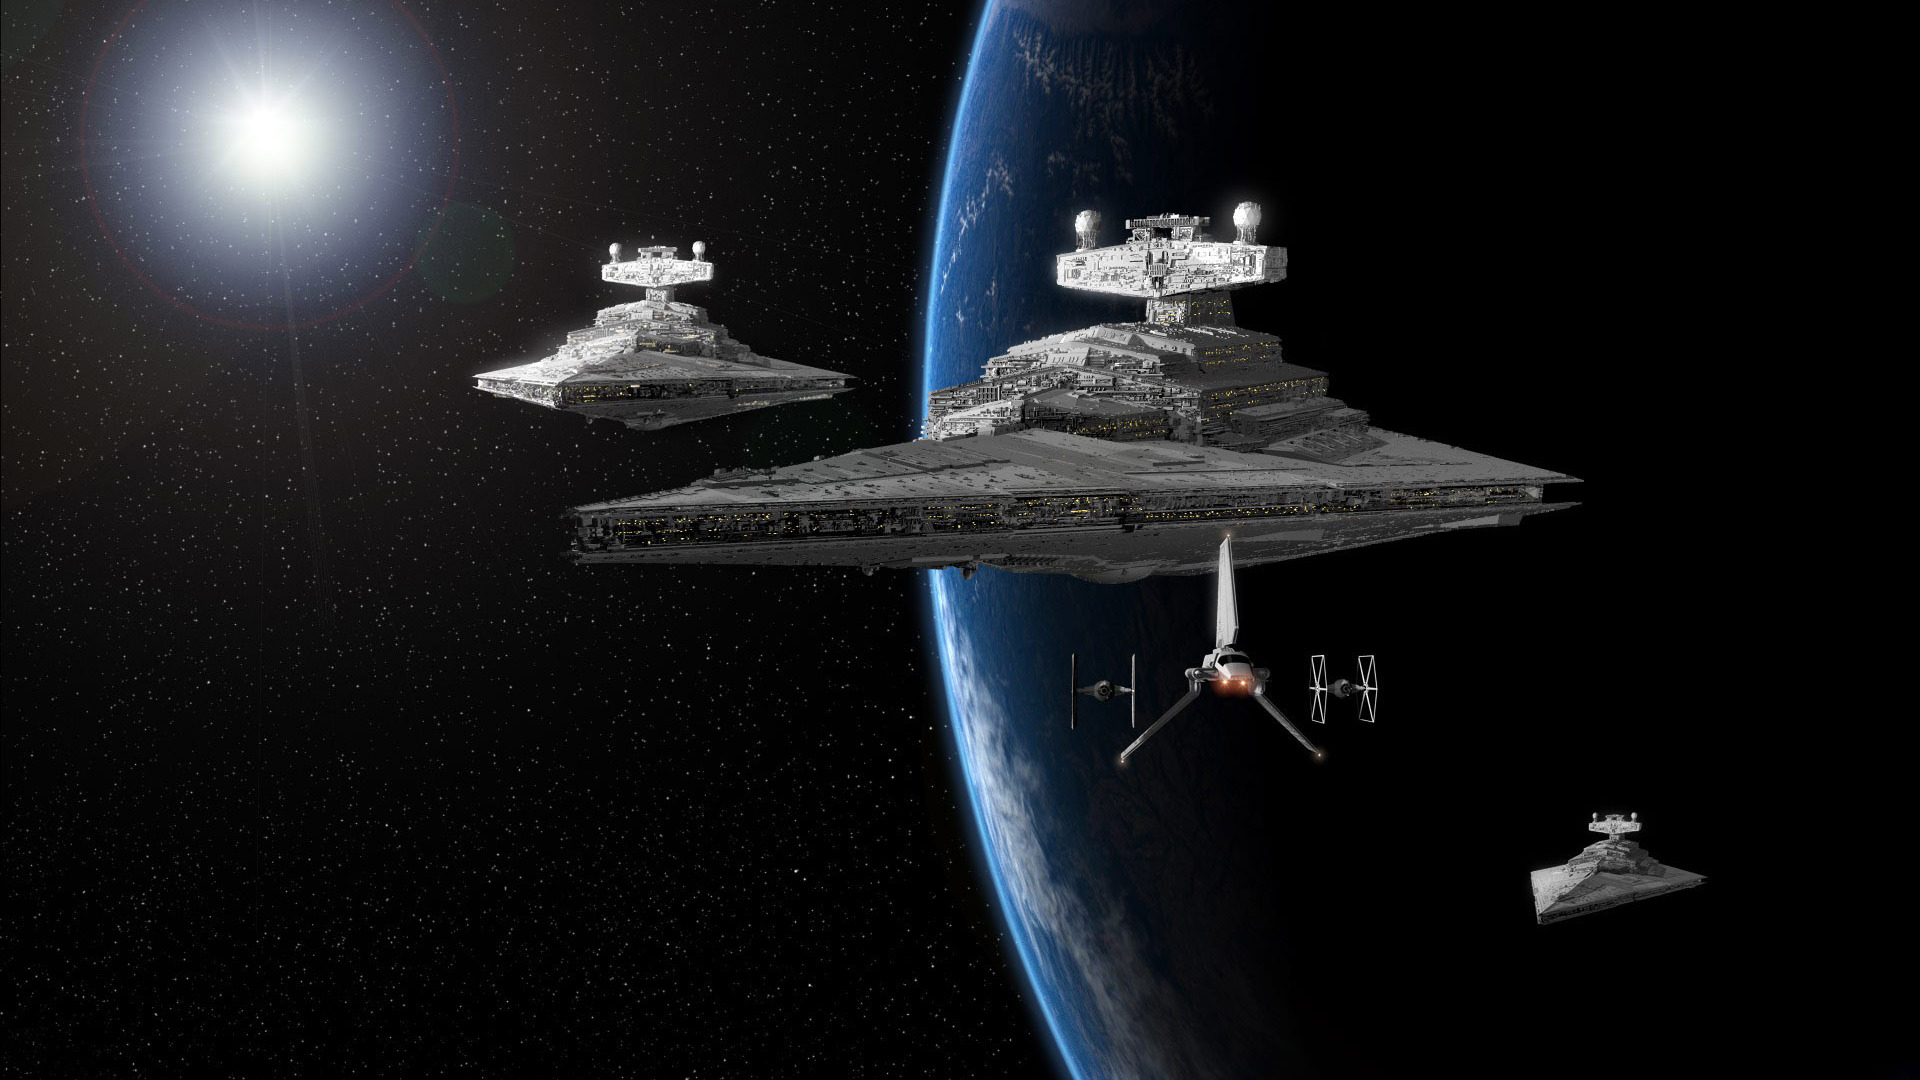 47 Star Destroyer Wallpaper Hd On Wallpapersafari